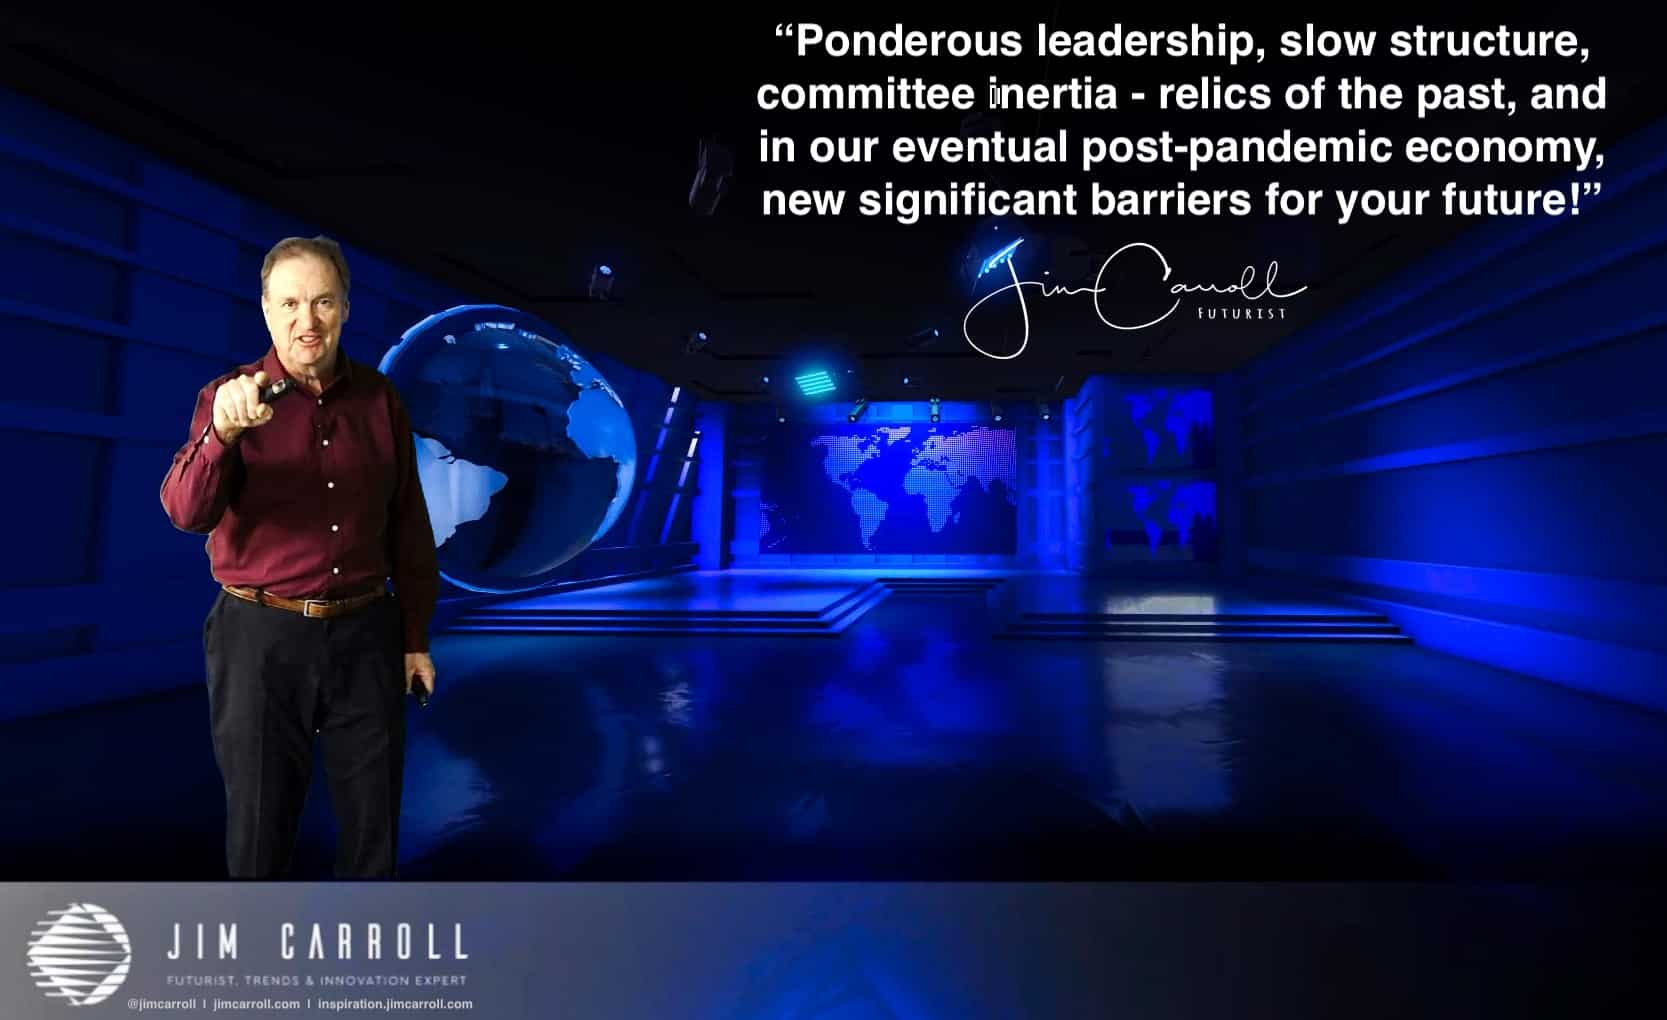 "Daily Inspiration: ""Ponderous leadership, slow structure, committee inertia - relics of the past....barriers for your future!"""